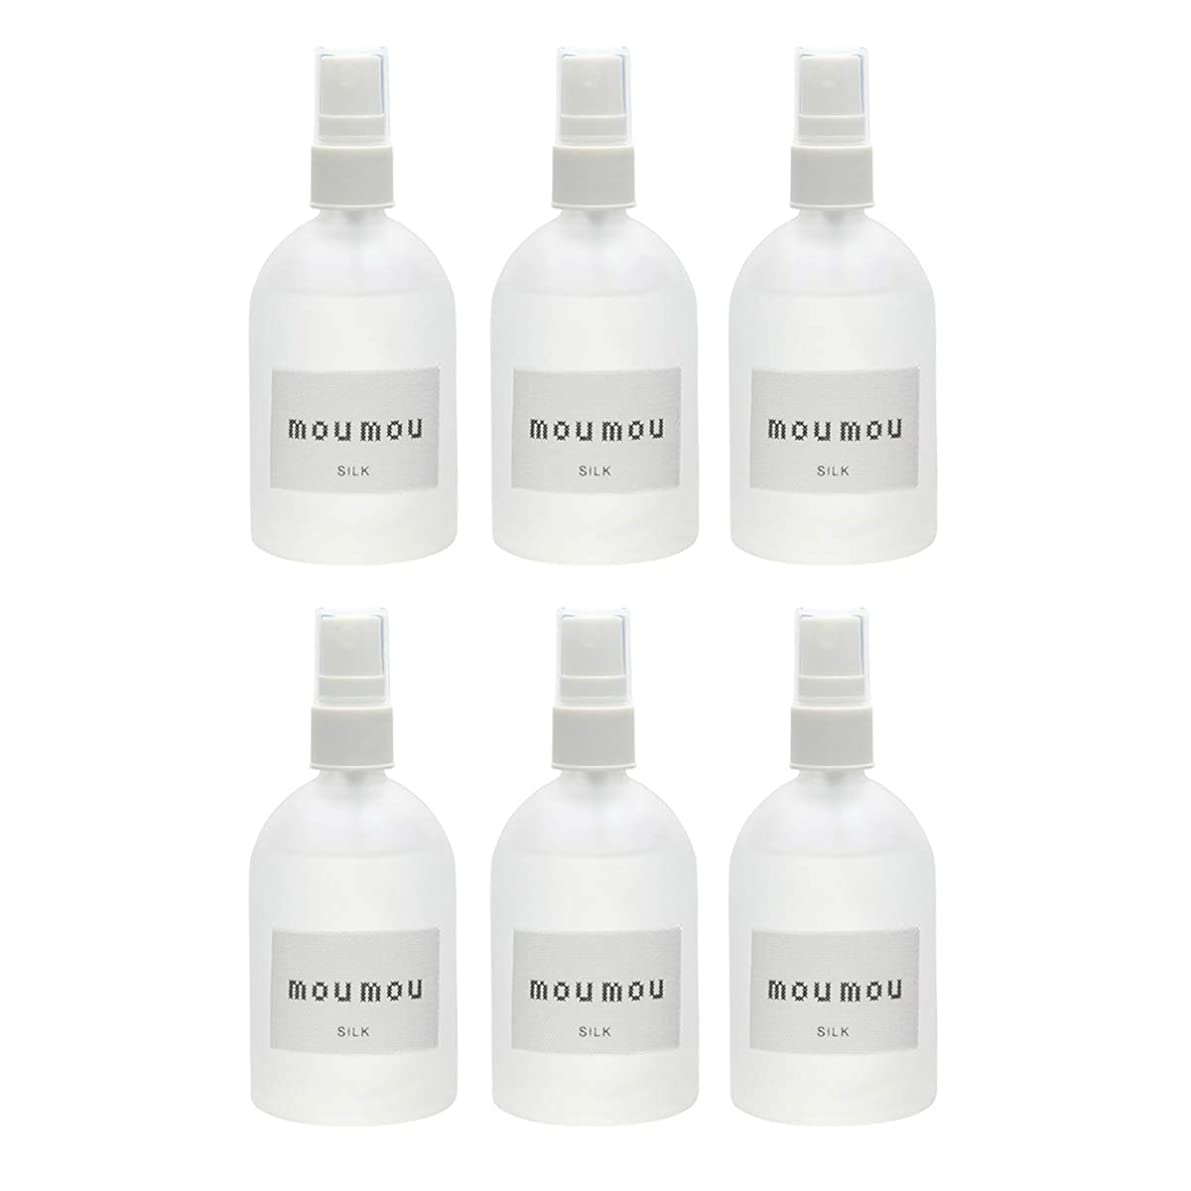 MOU MOU ピローミスト シルク 100mL 6個セット